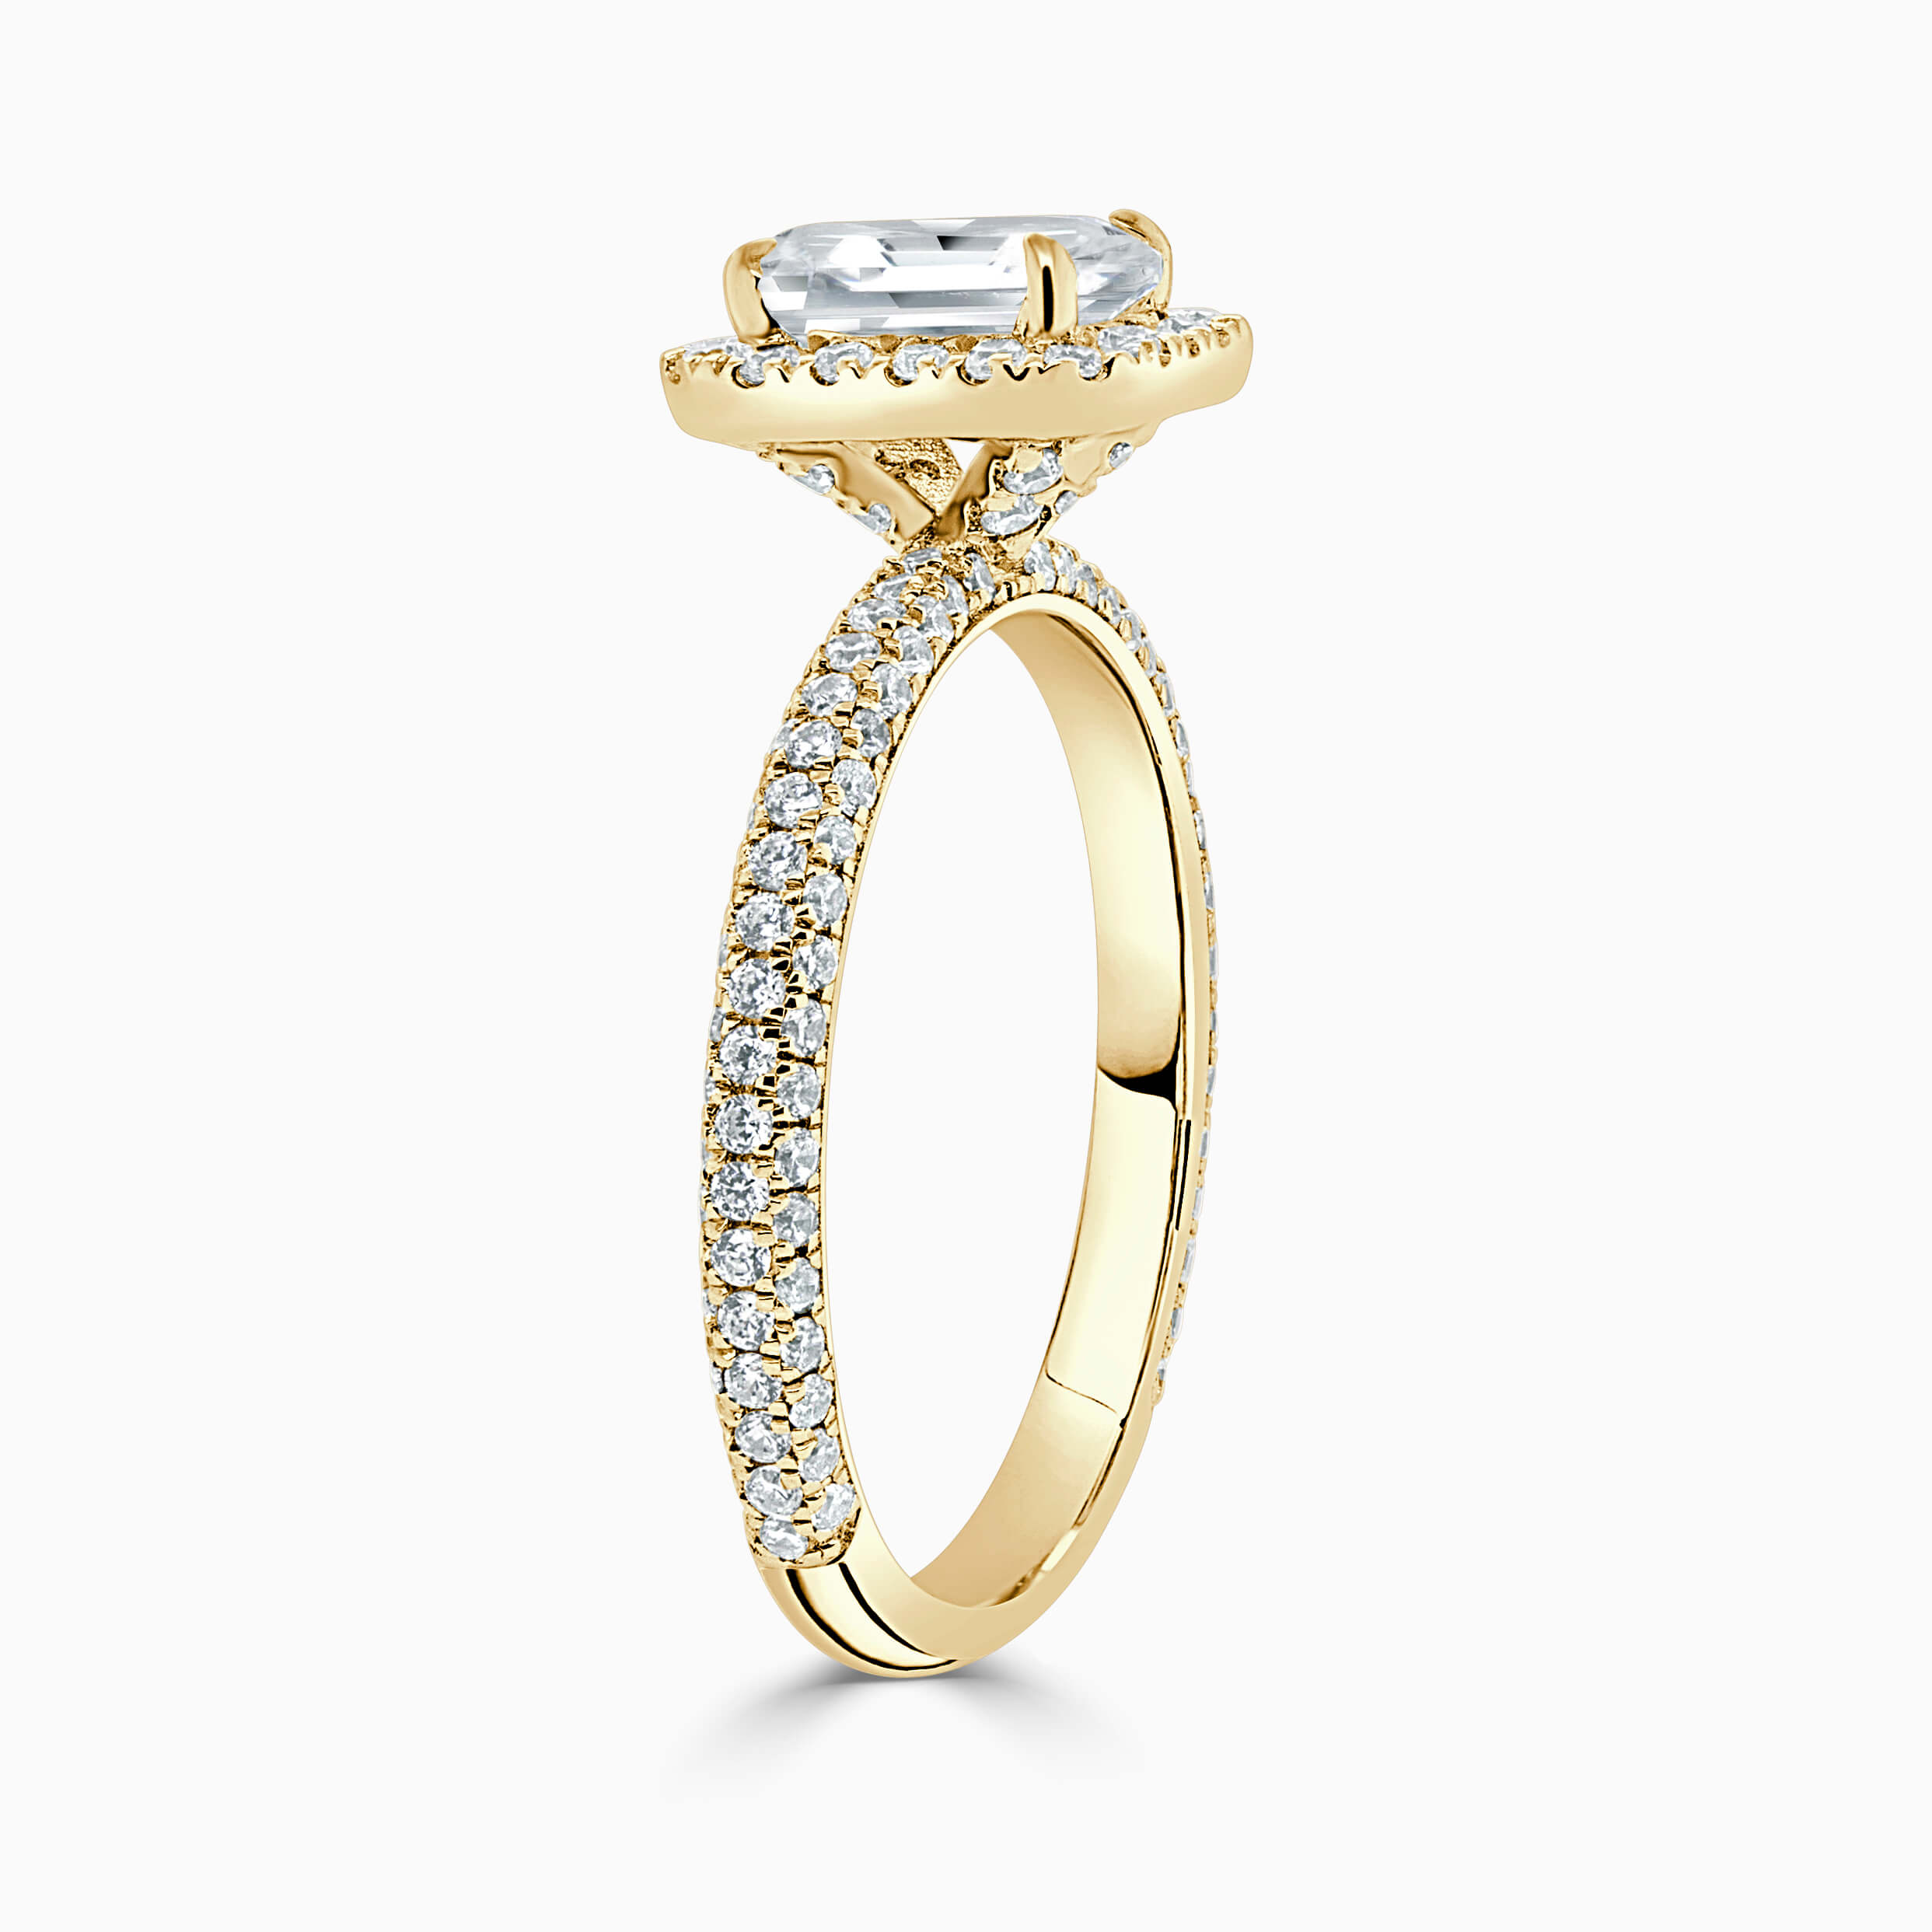 18ct Yellow Gold Radiant Cut Halo With Micro Pave Engagement Ring